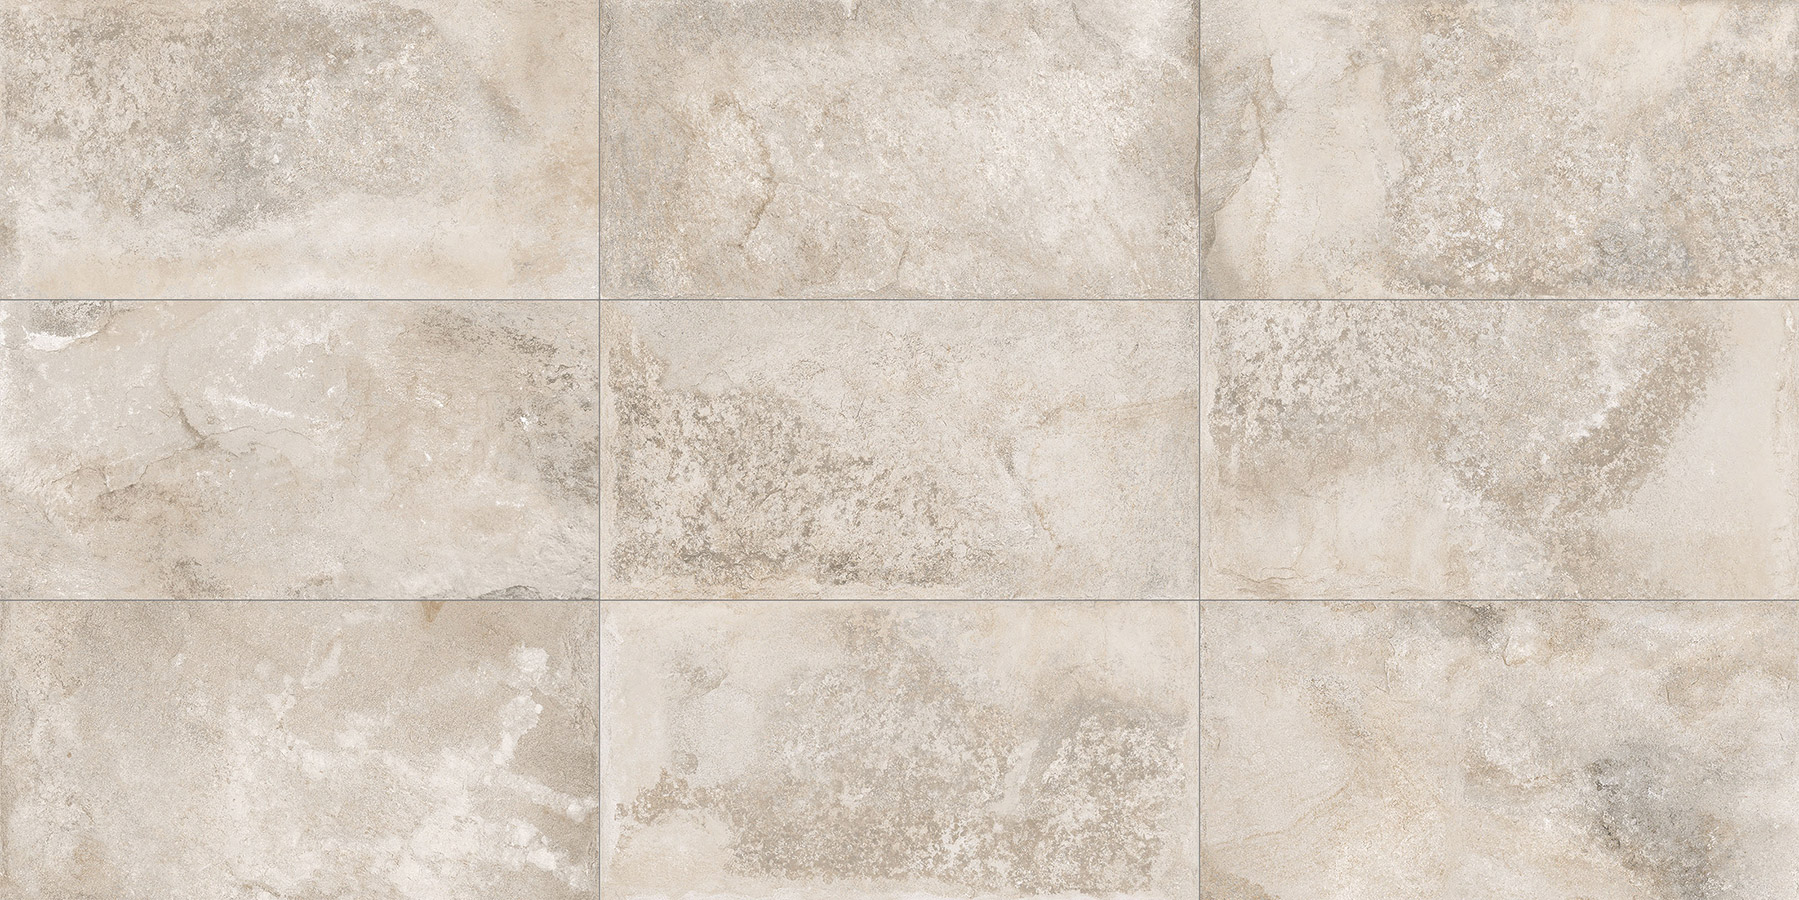 Porcelain stone the most natural tile for interiors